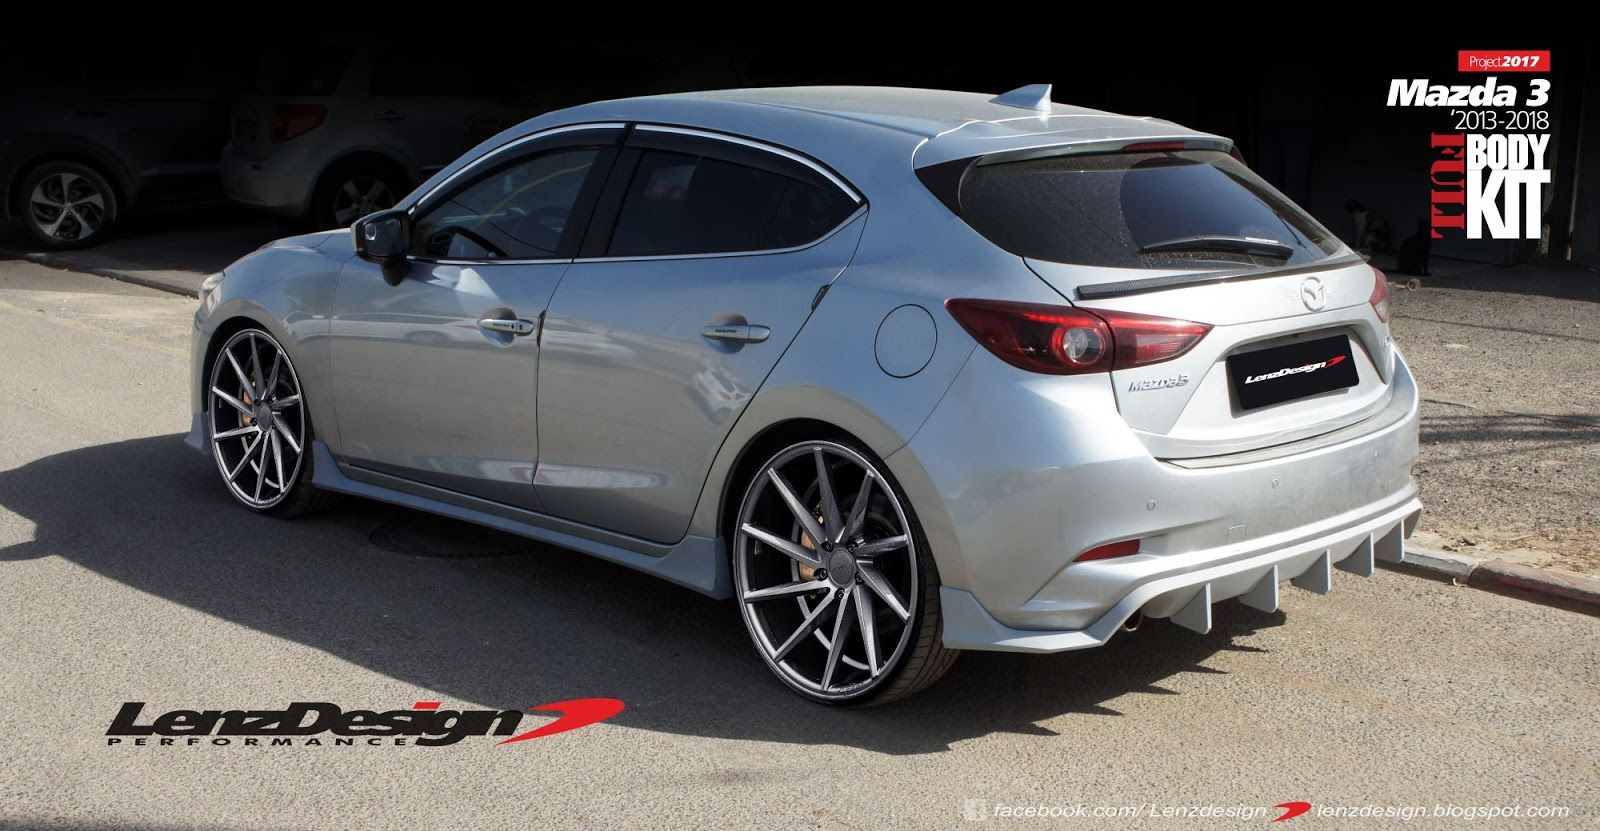 Mazda 3 BM Axela Hatchback Body Kit & Tuning Lenzdesign